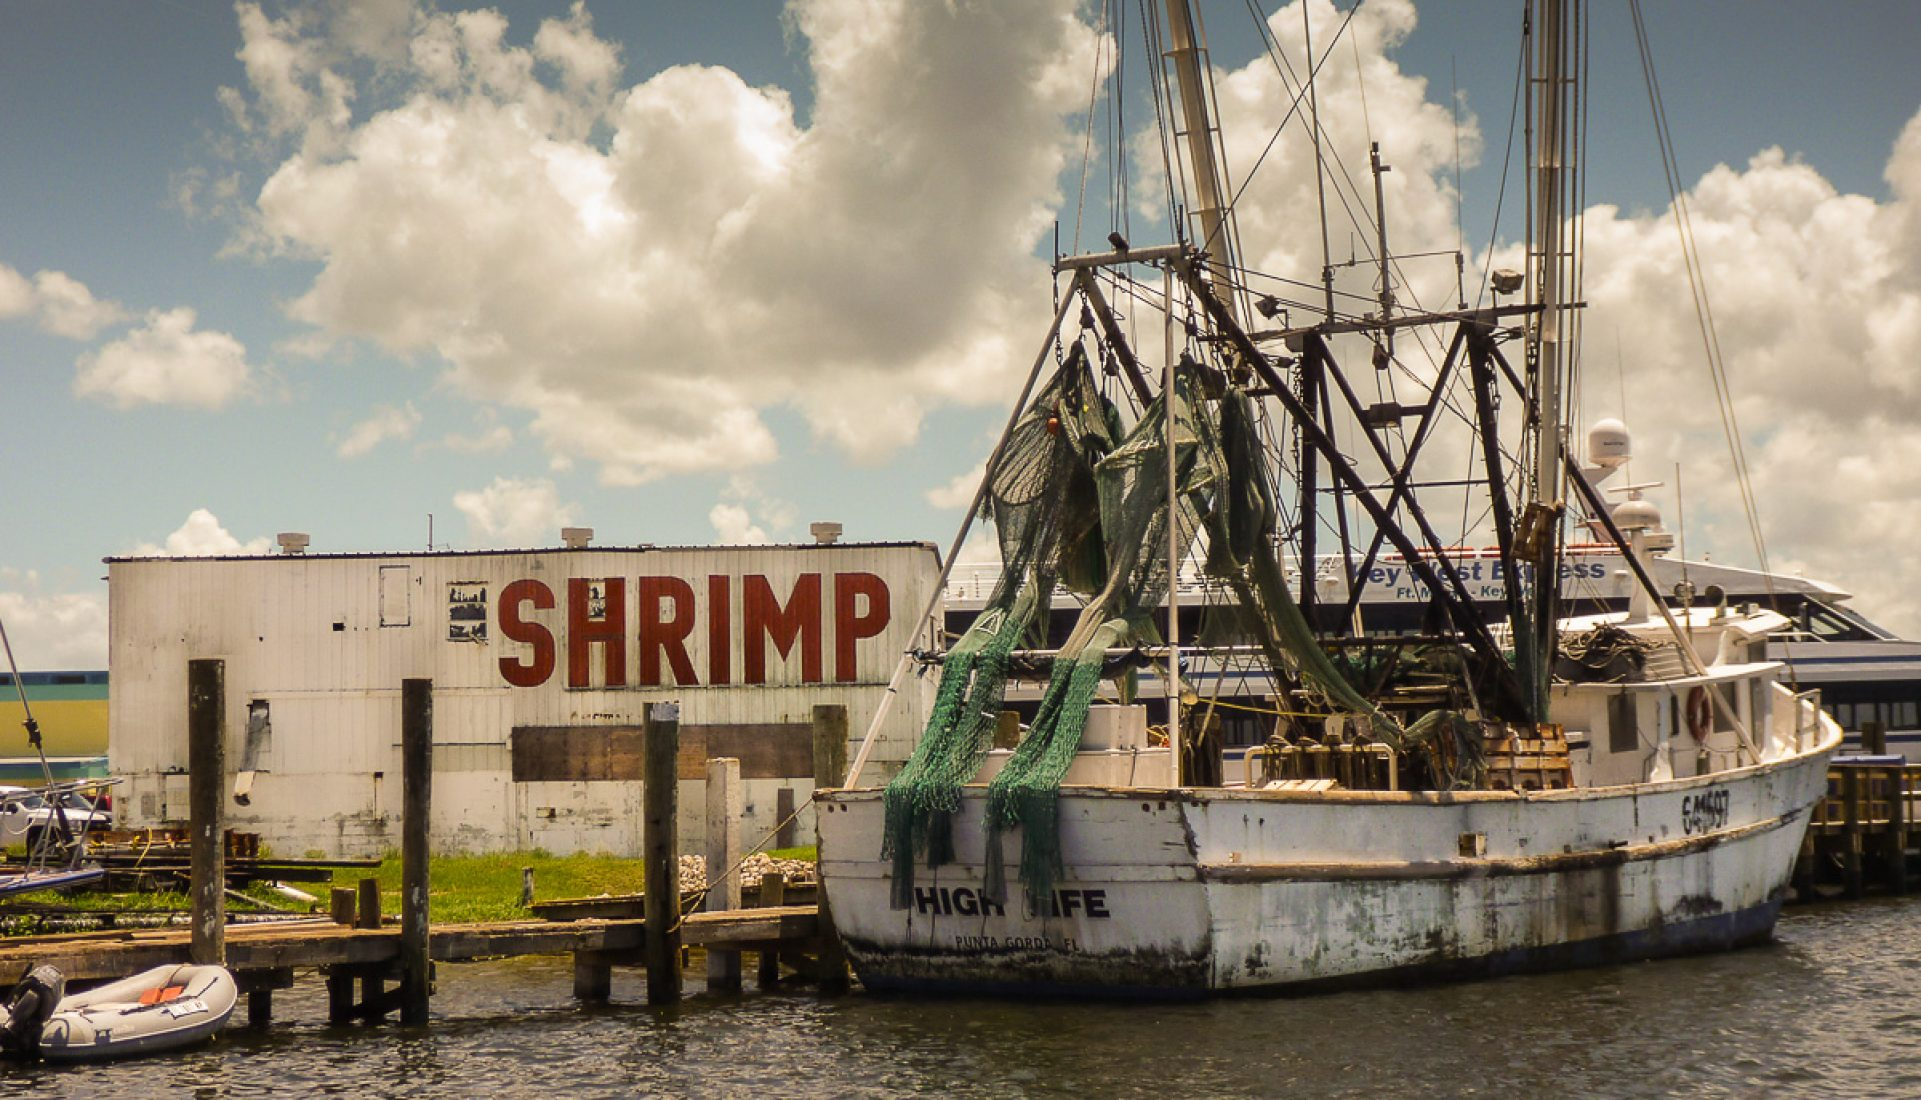 Shrimpers – a Dying Way of Life Photo Essay